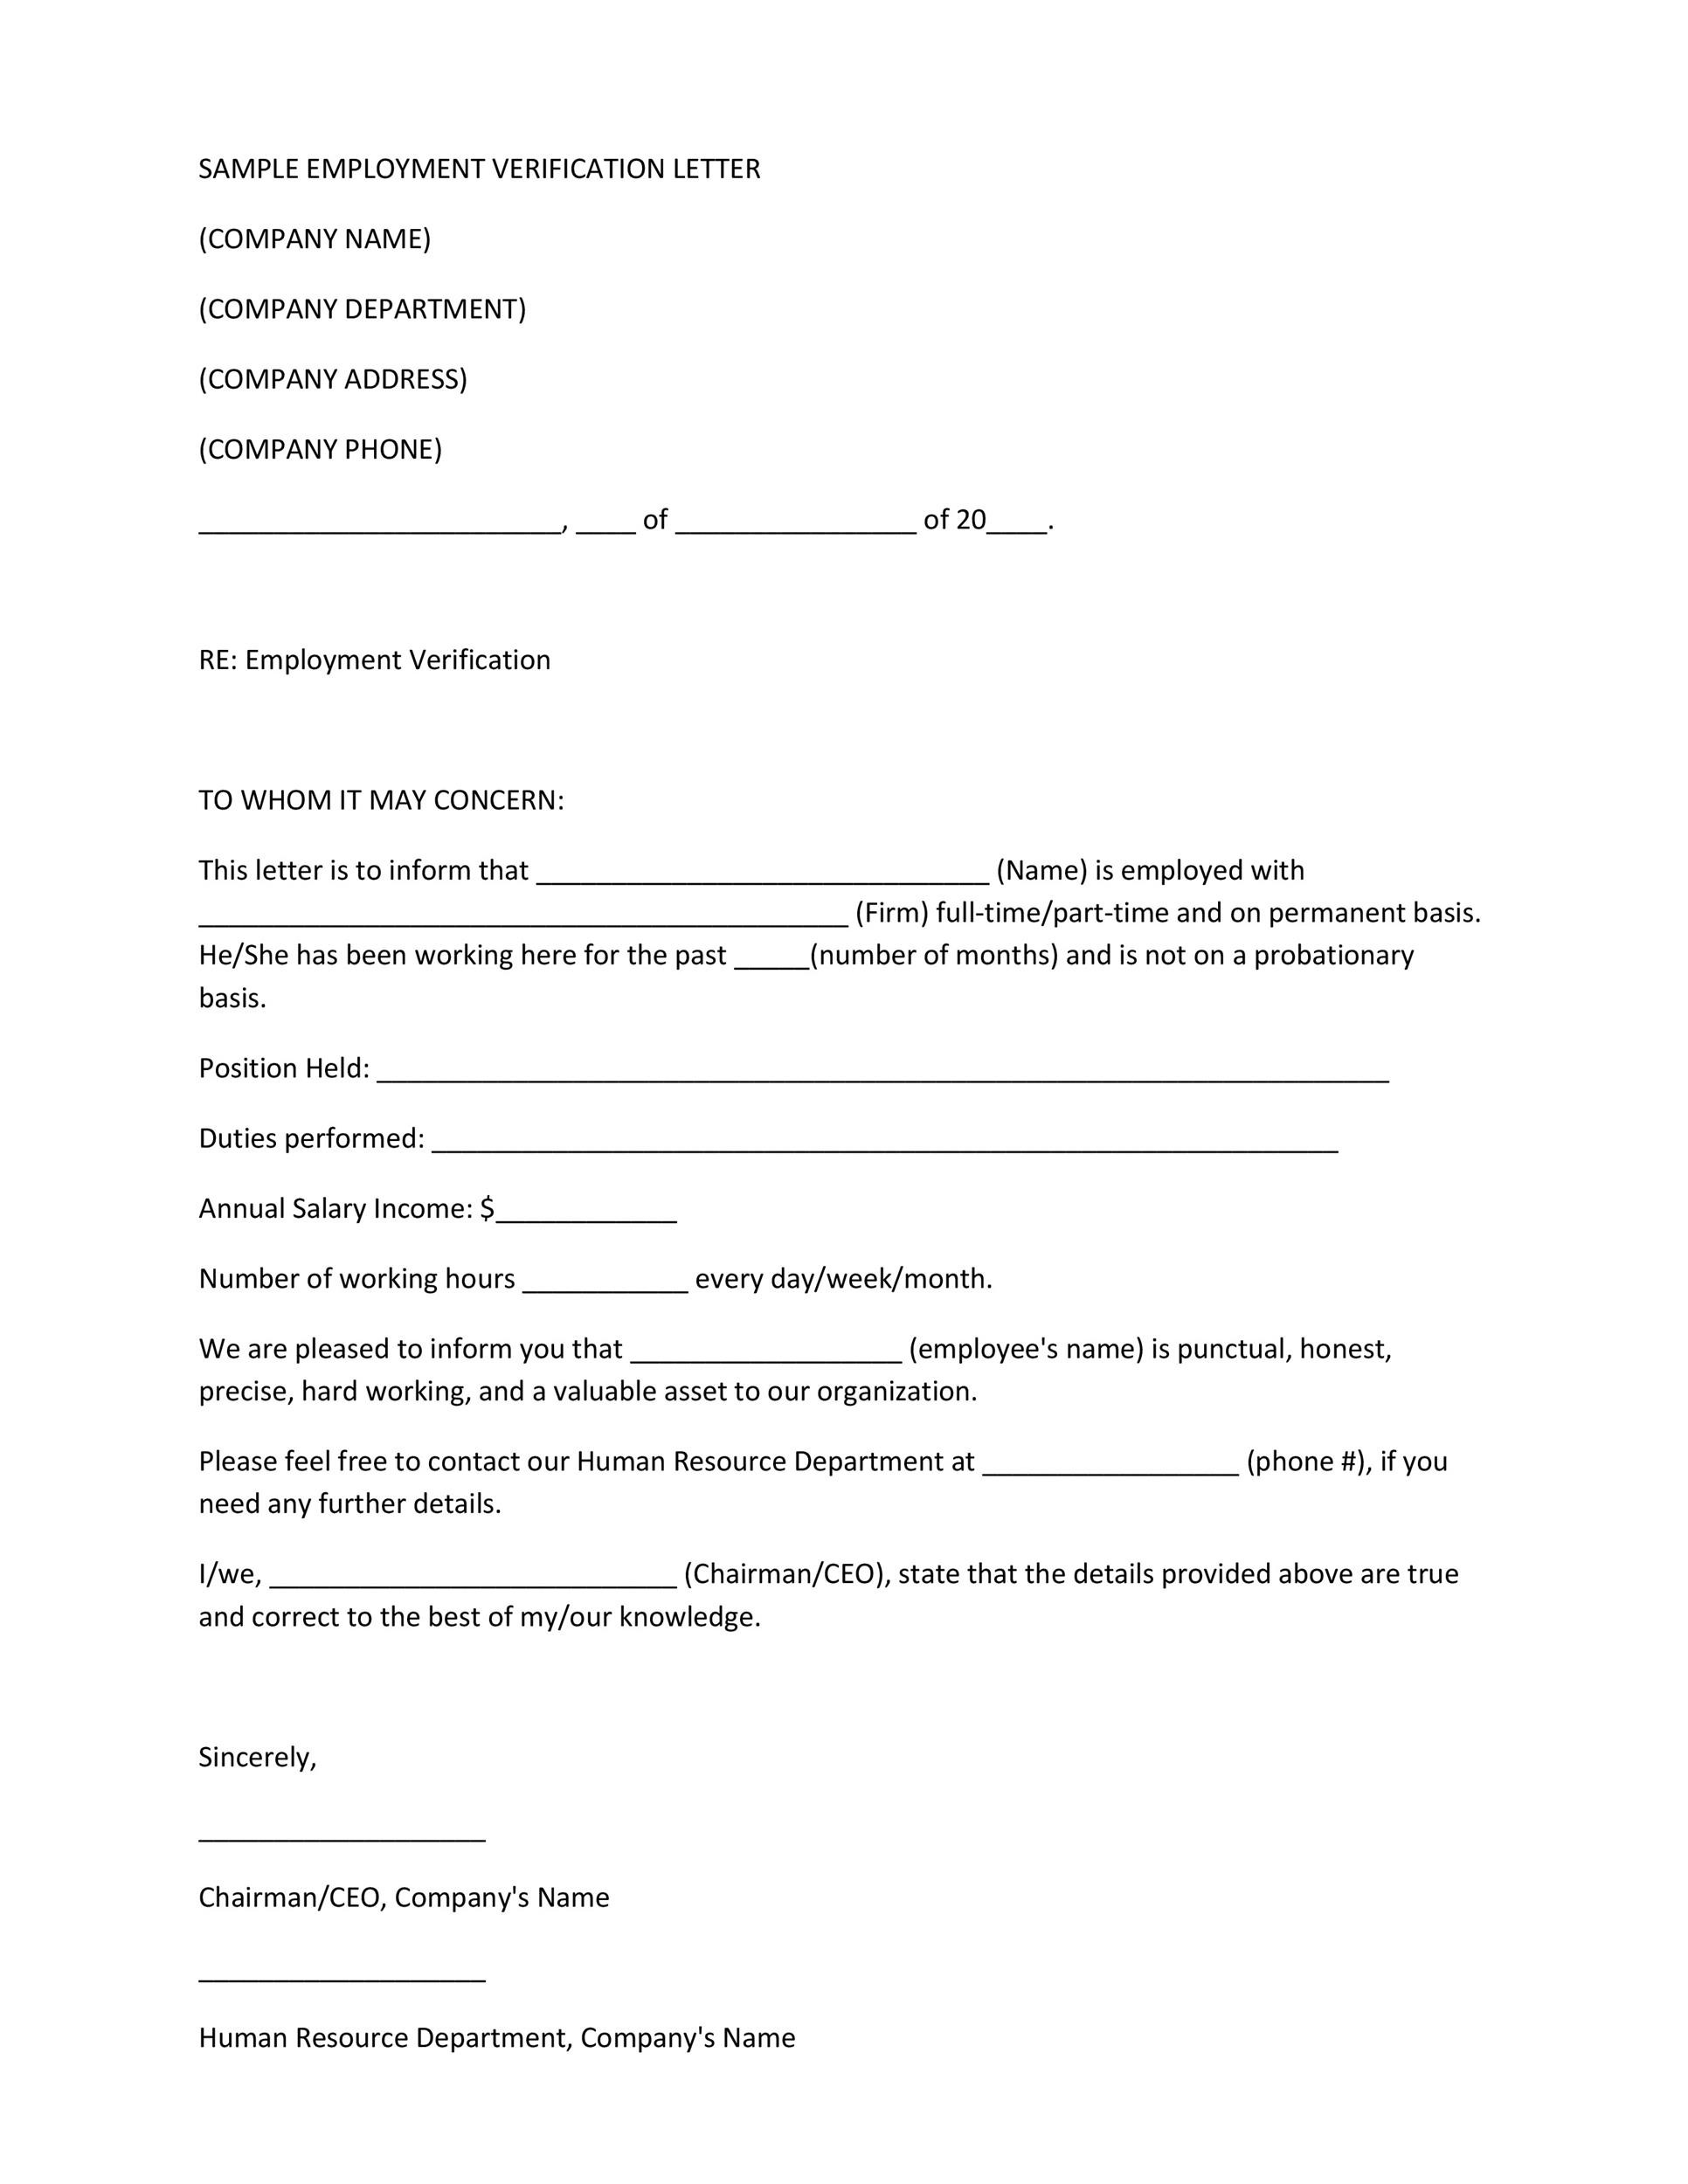 Sample Letter. Printable Sample Letter Of Resignation Form: Best